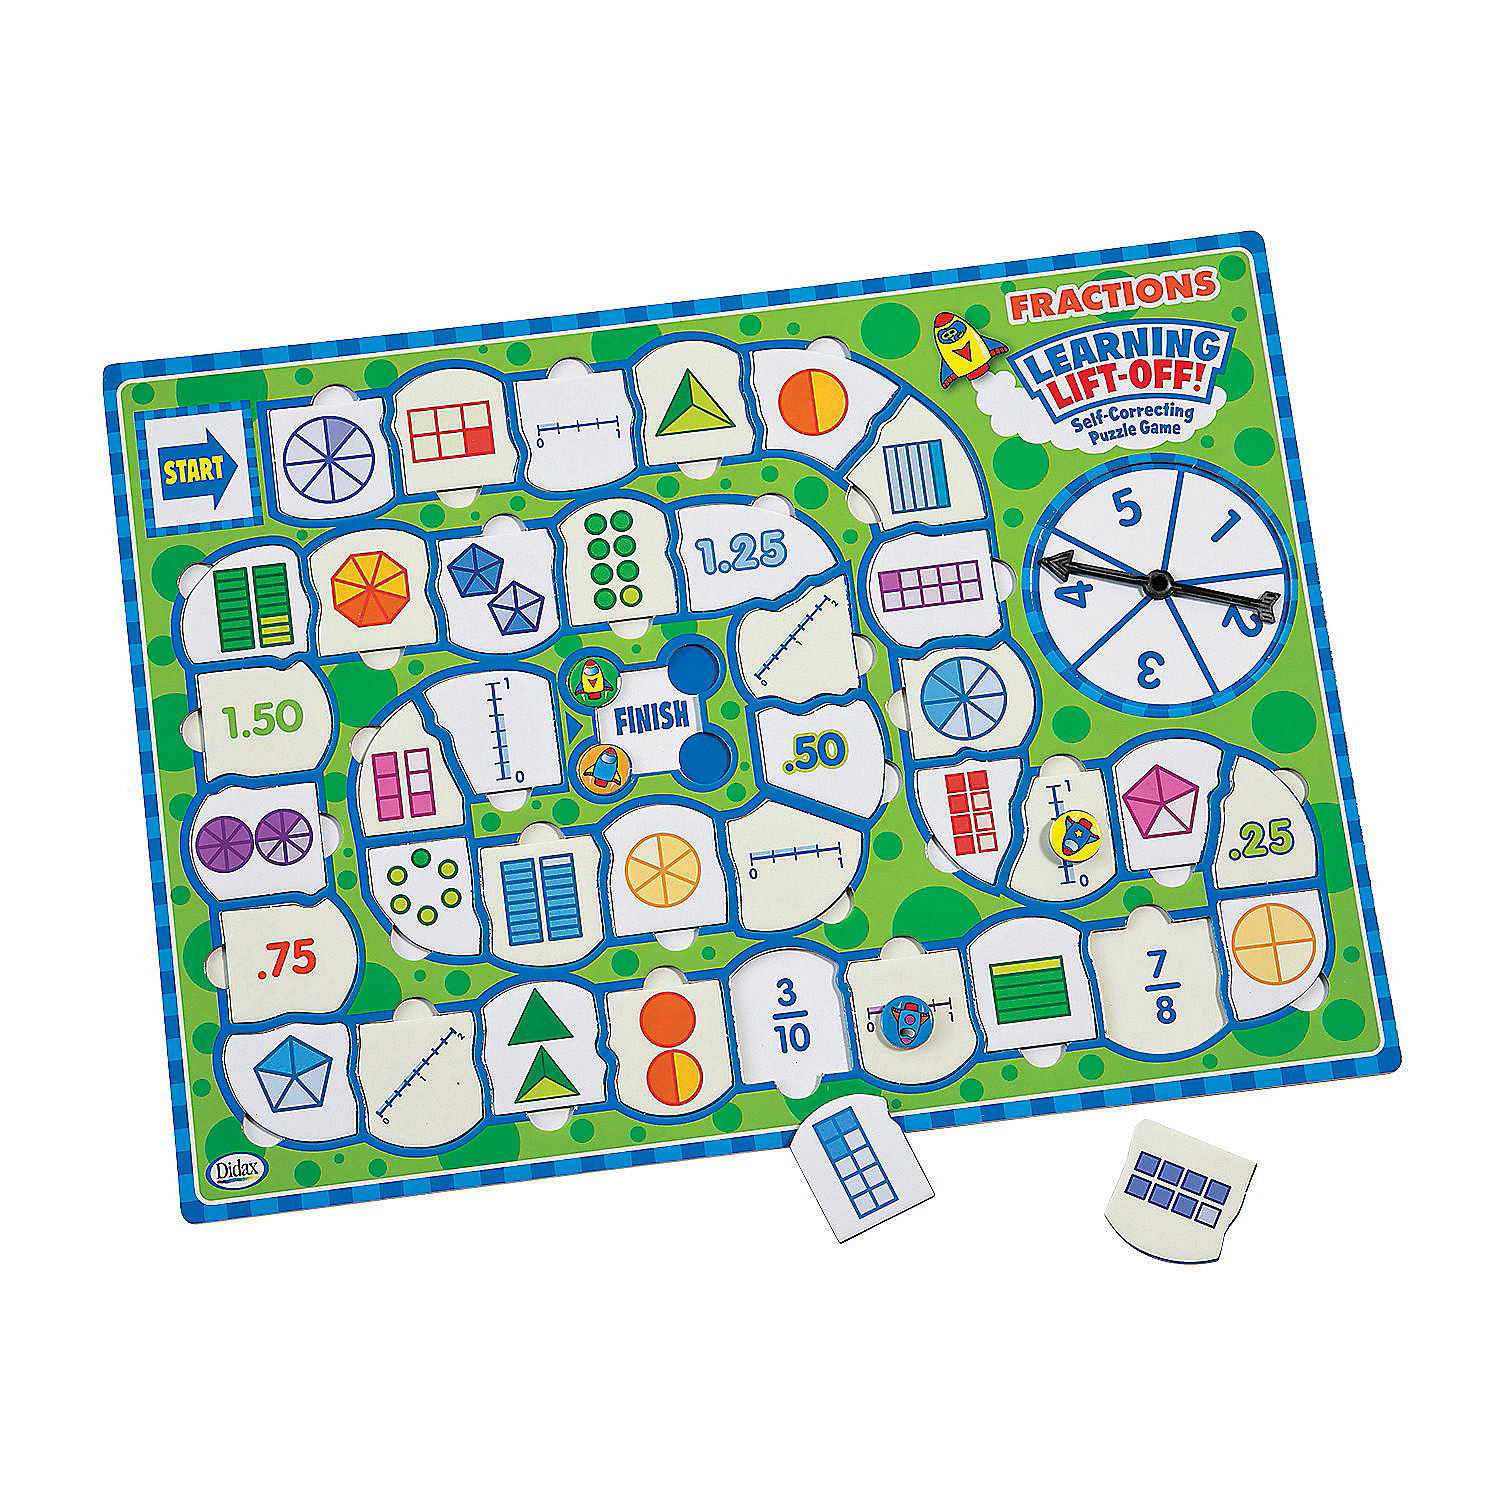 IN-13866972 Learning Lift Off - Fractions Game By Fun Express